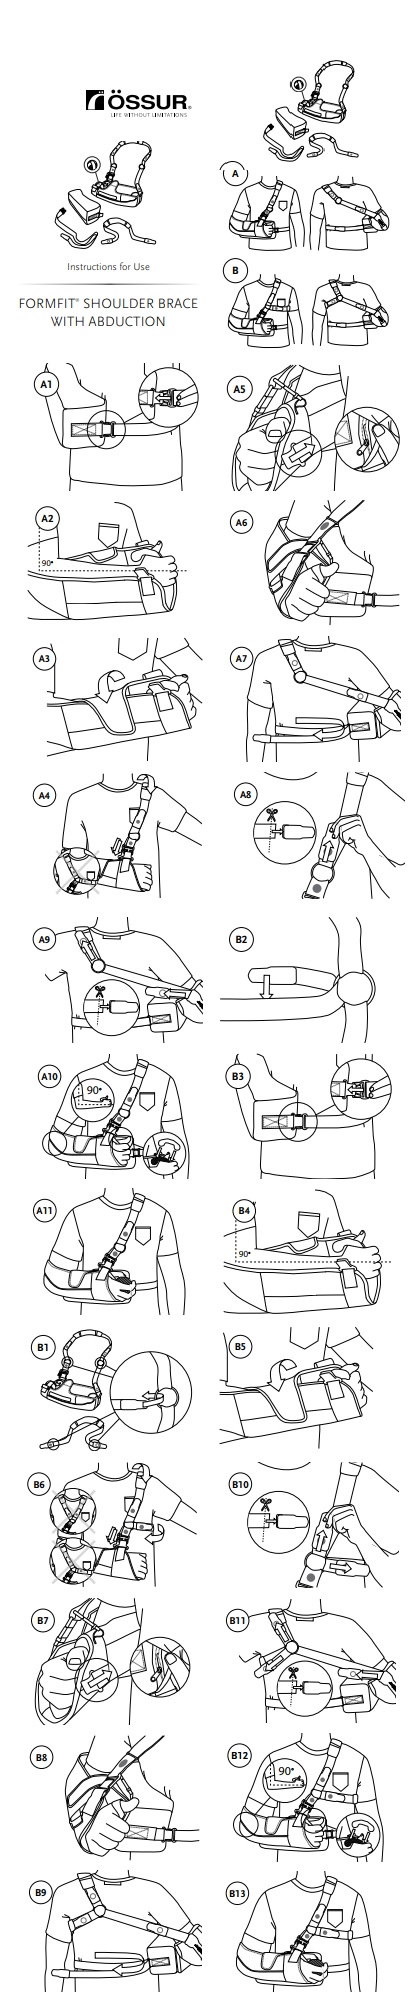 formfit shoulder brace with abduction instructions